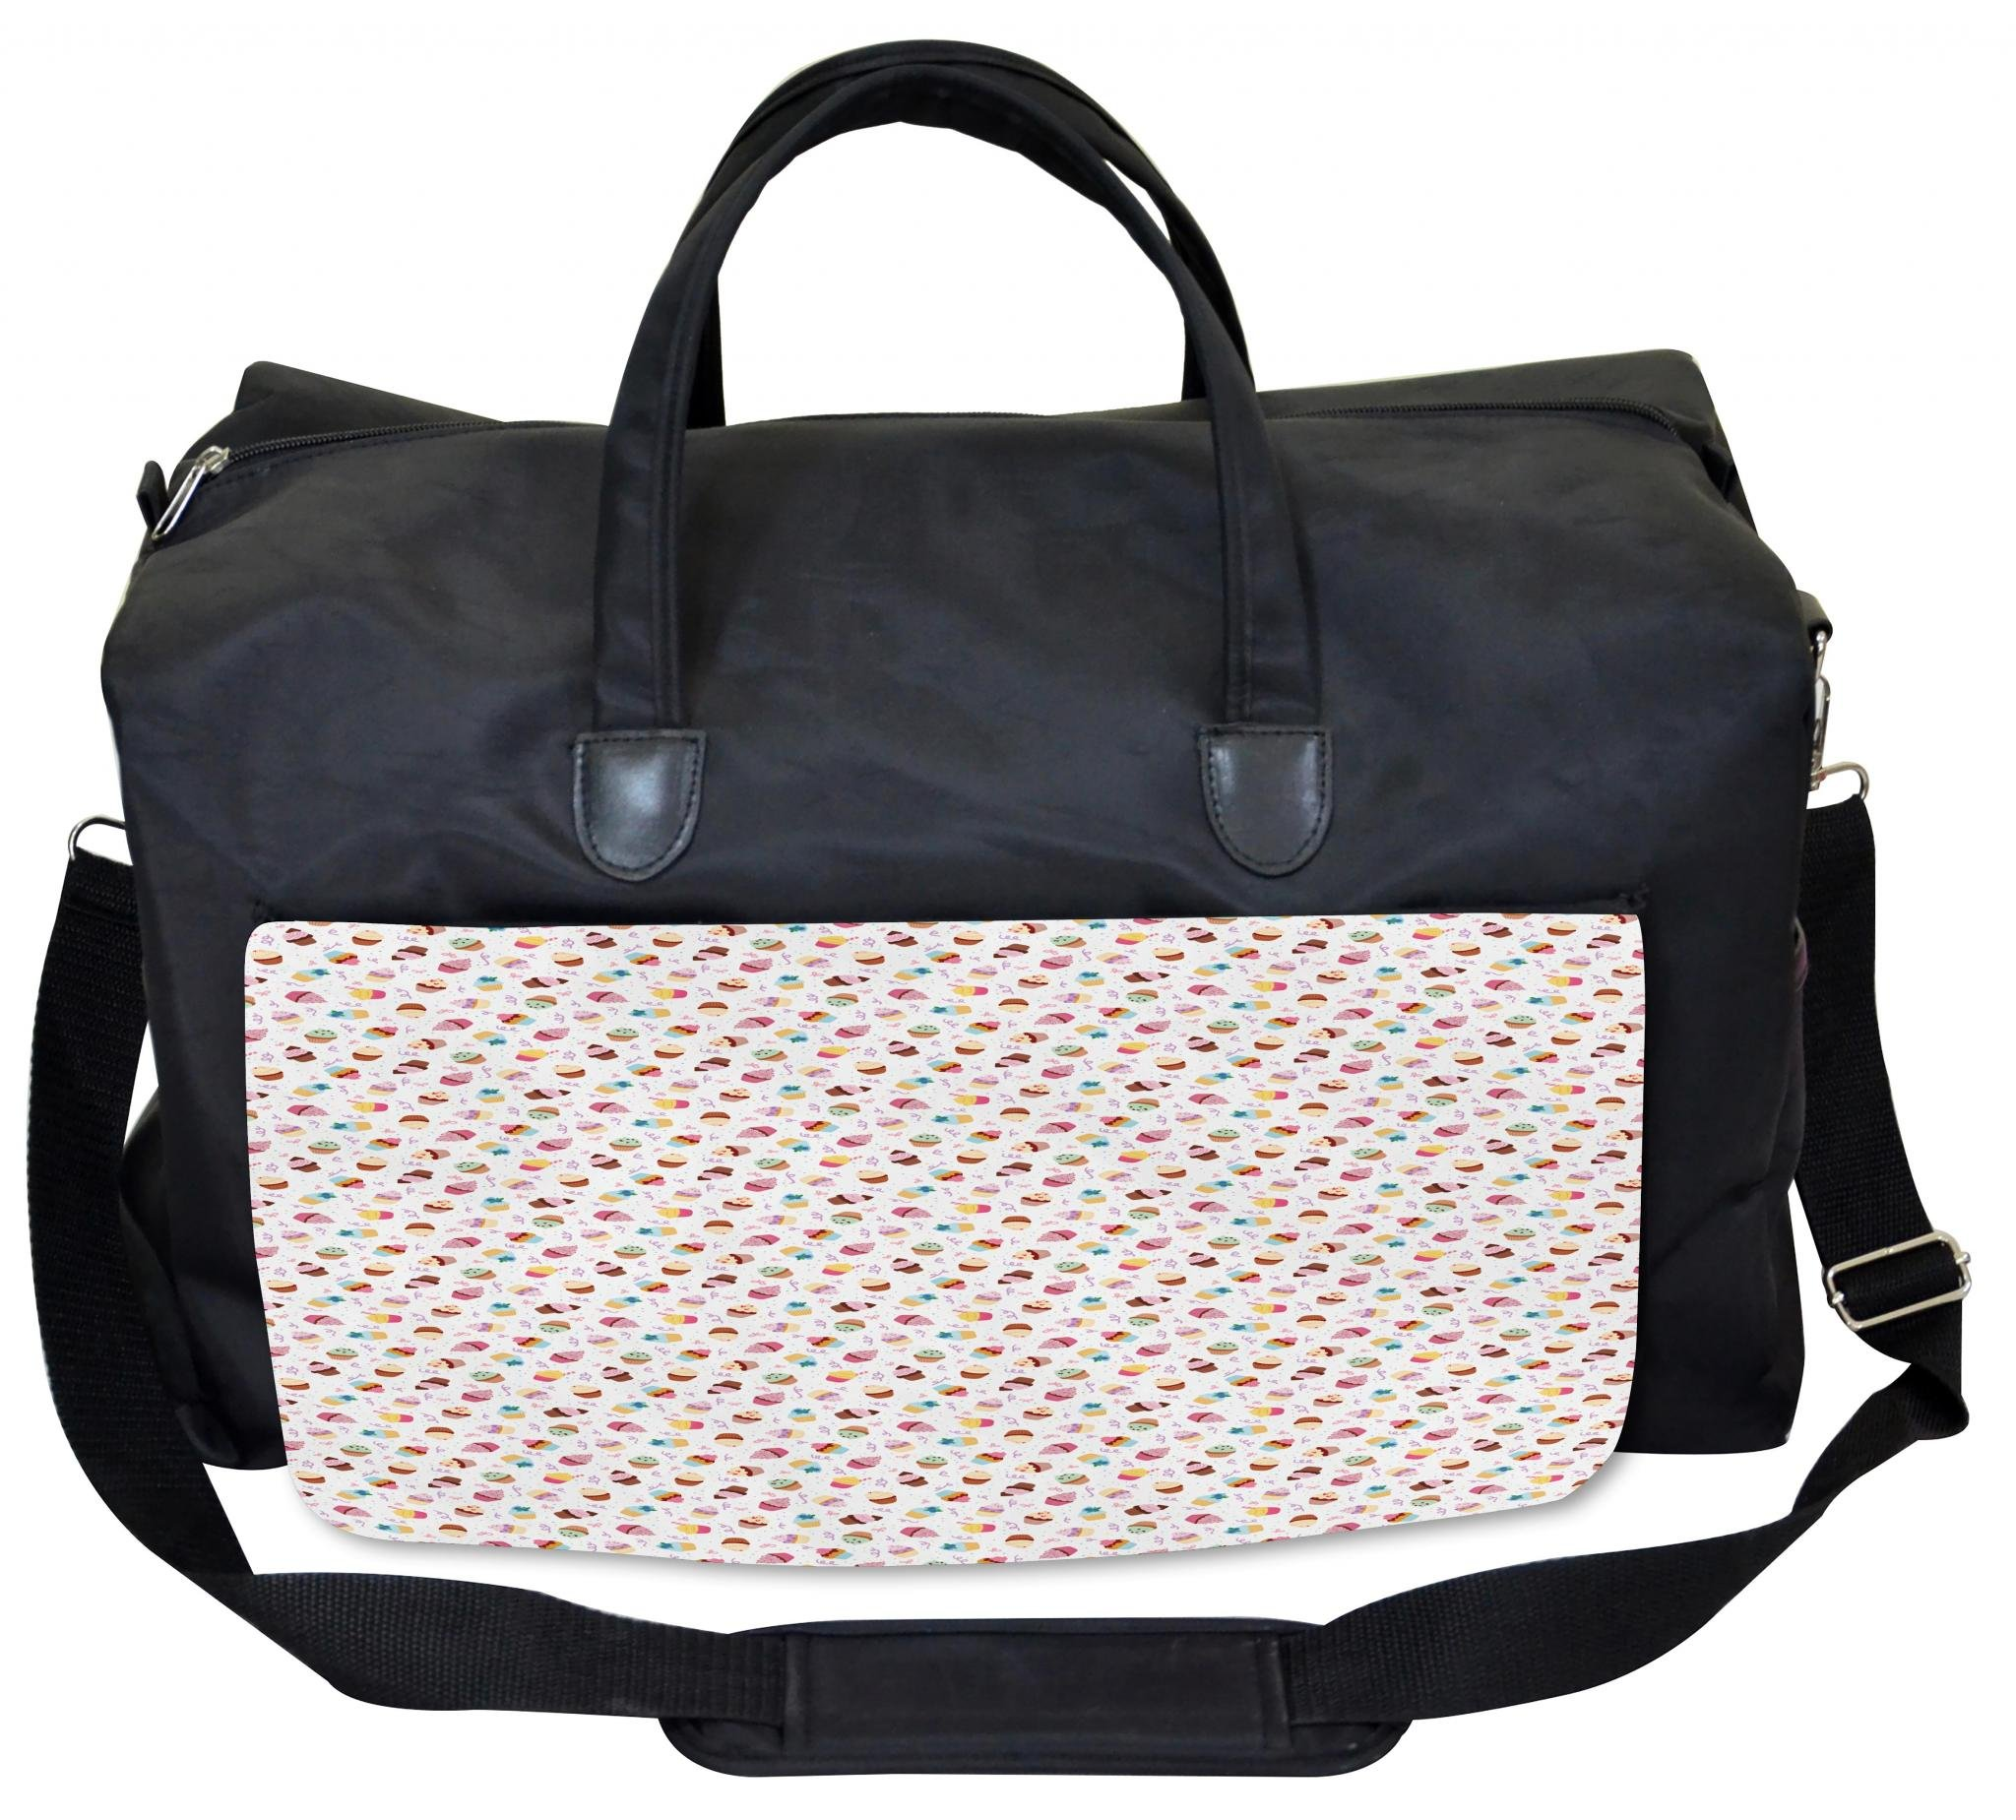 Lunarable Dessert Gym Bag, Yummy Cupcakes Sprinkled, Large Weekender Carry-on by Lunarable